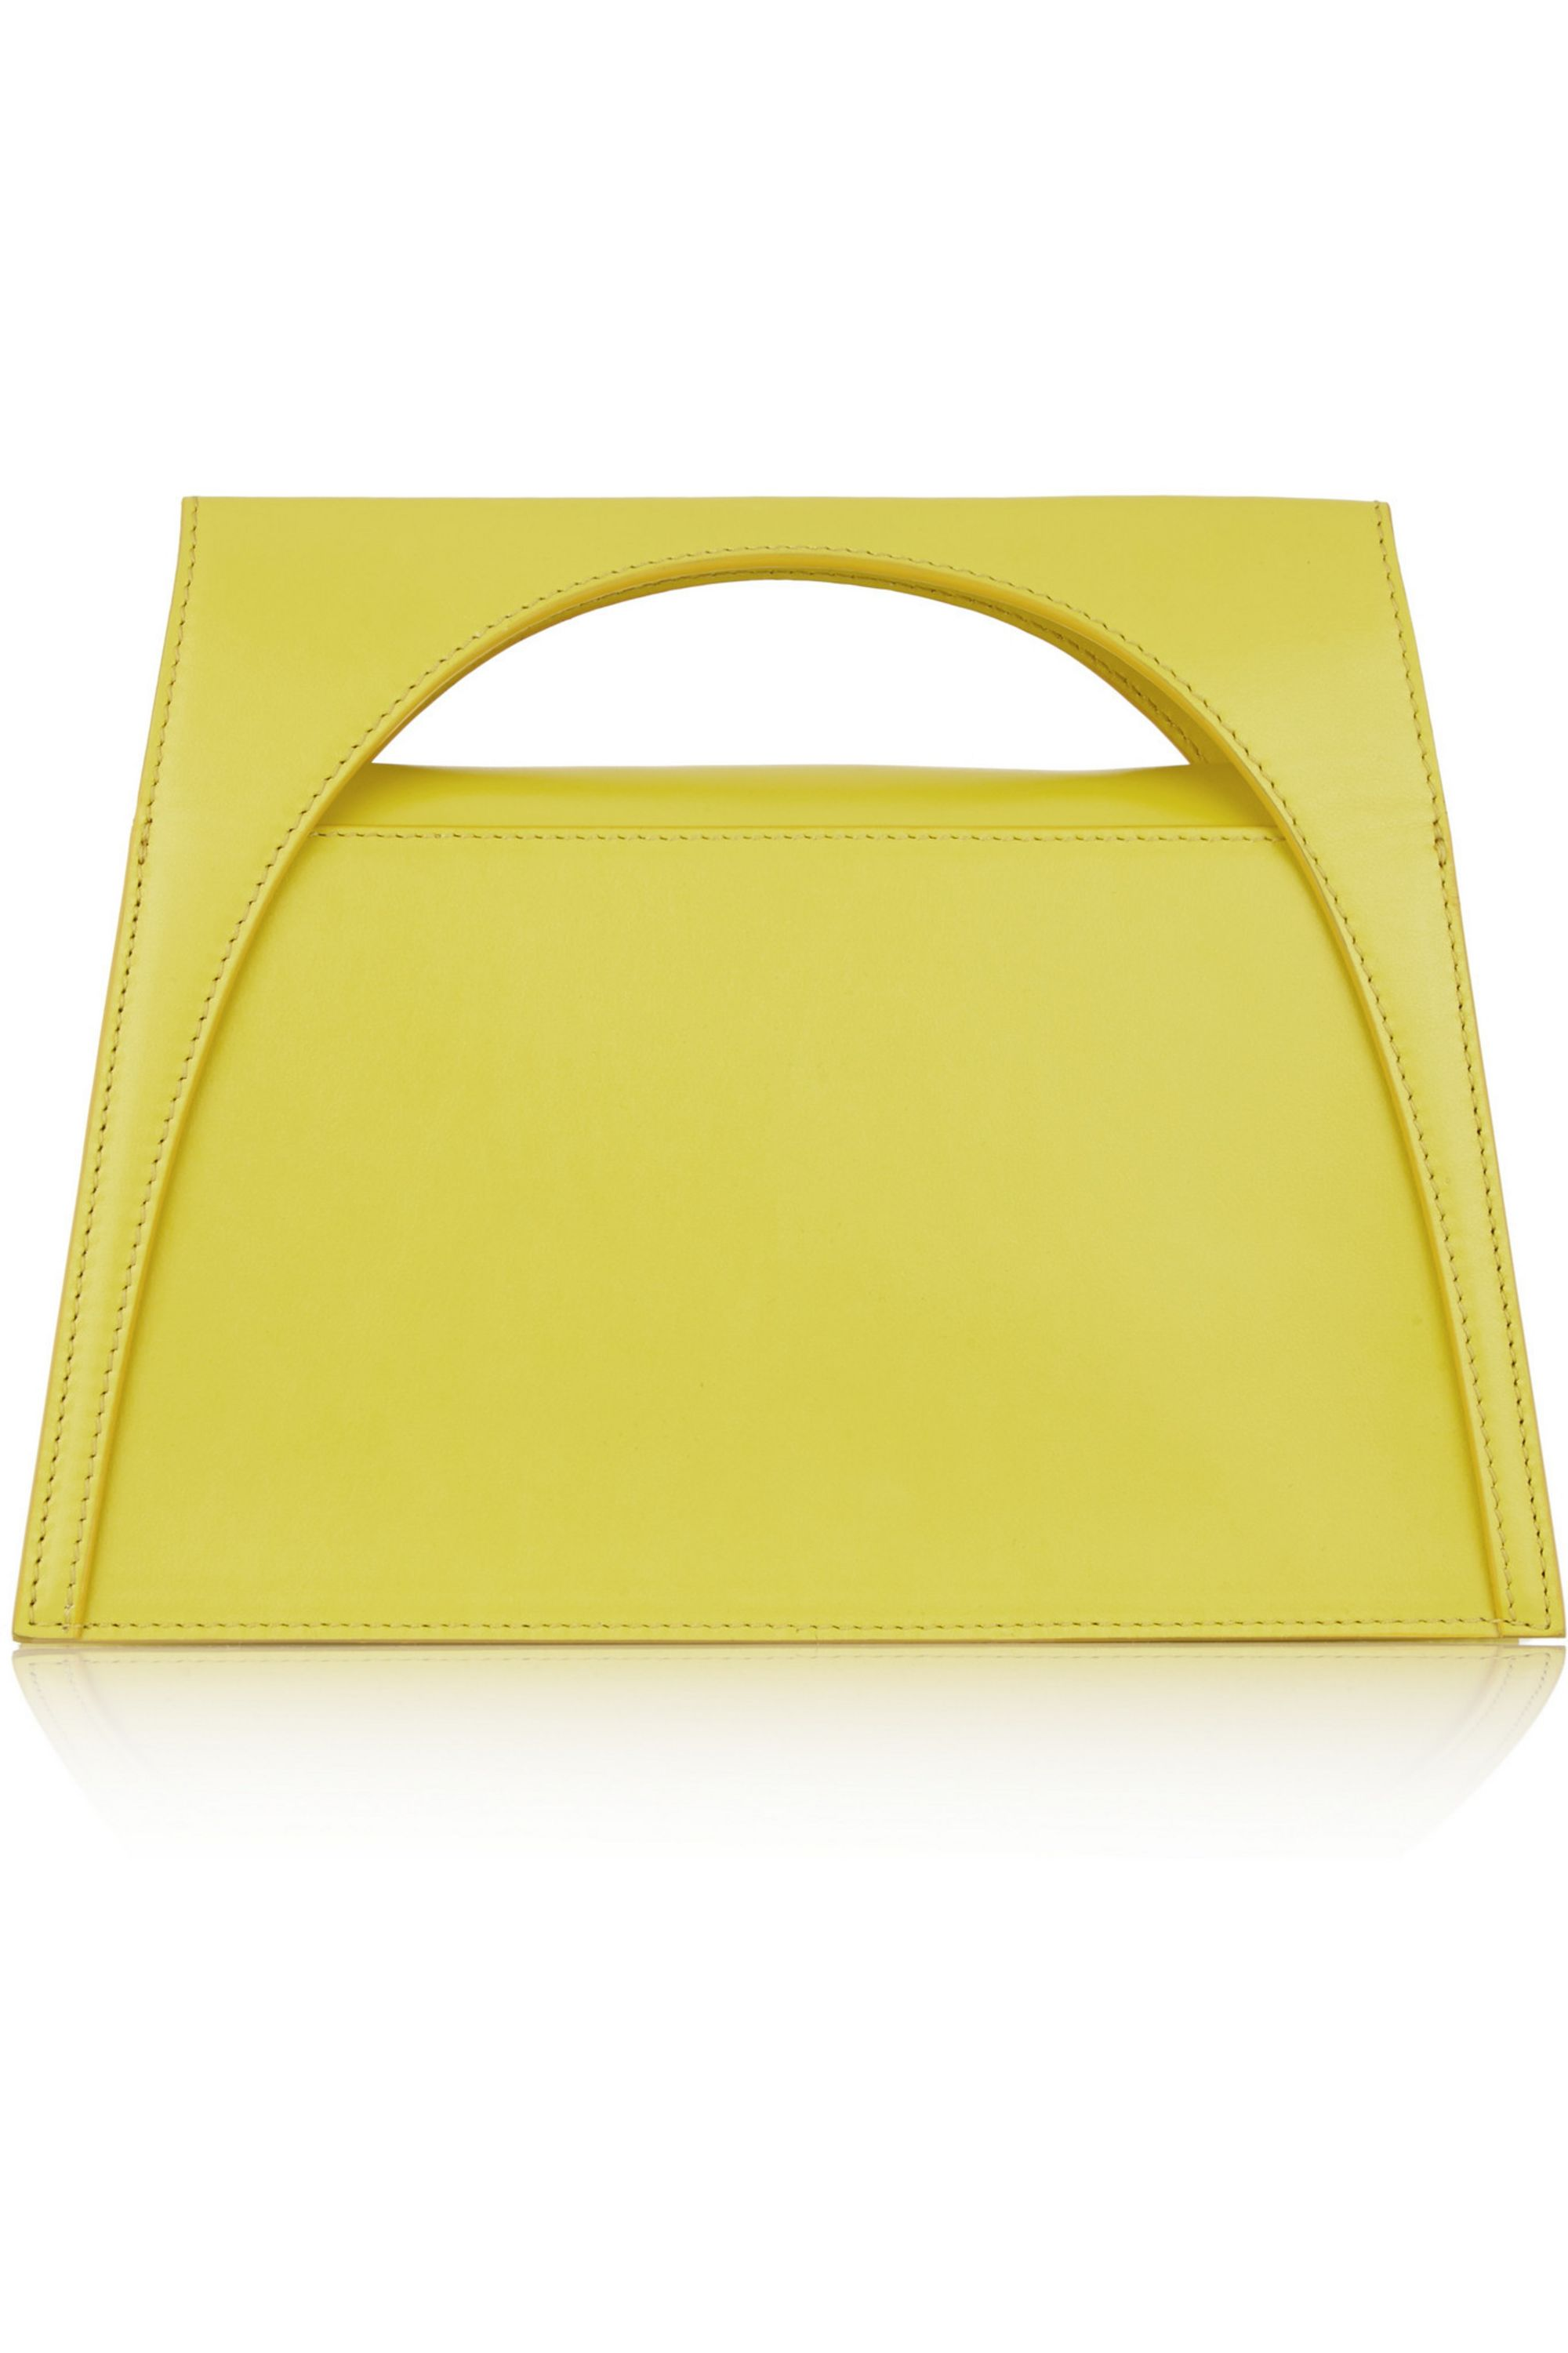 JW Anderson Moon leather tote